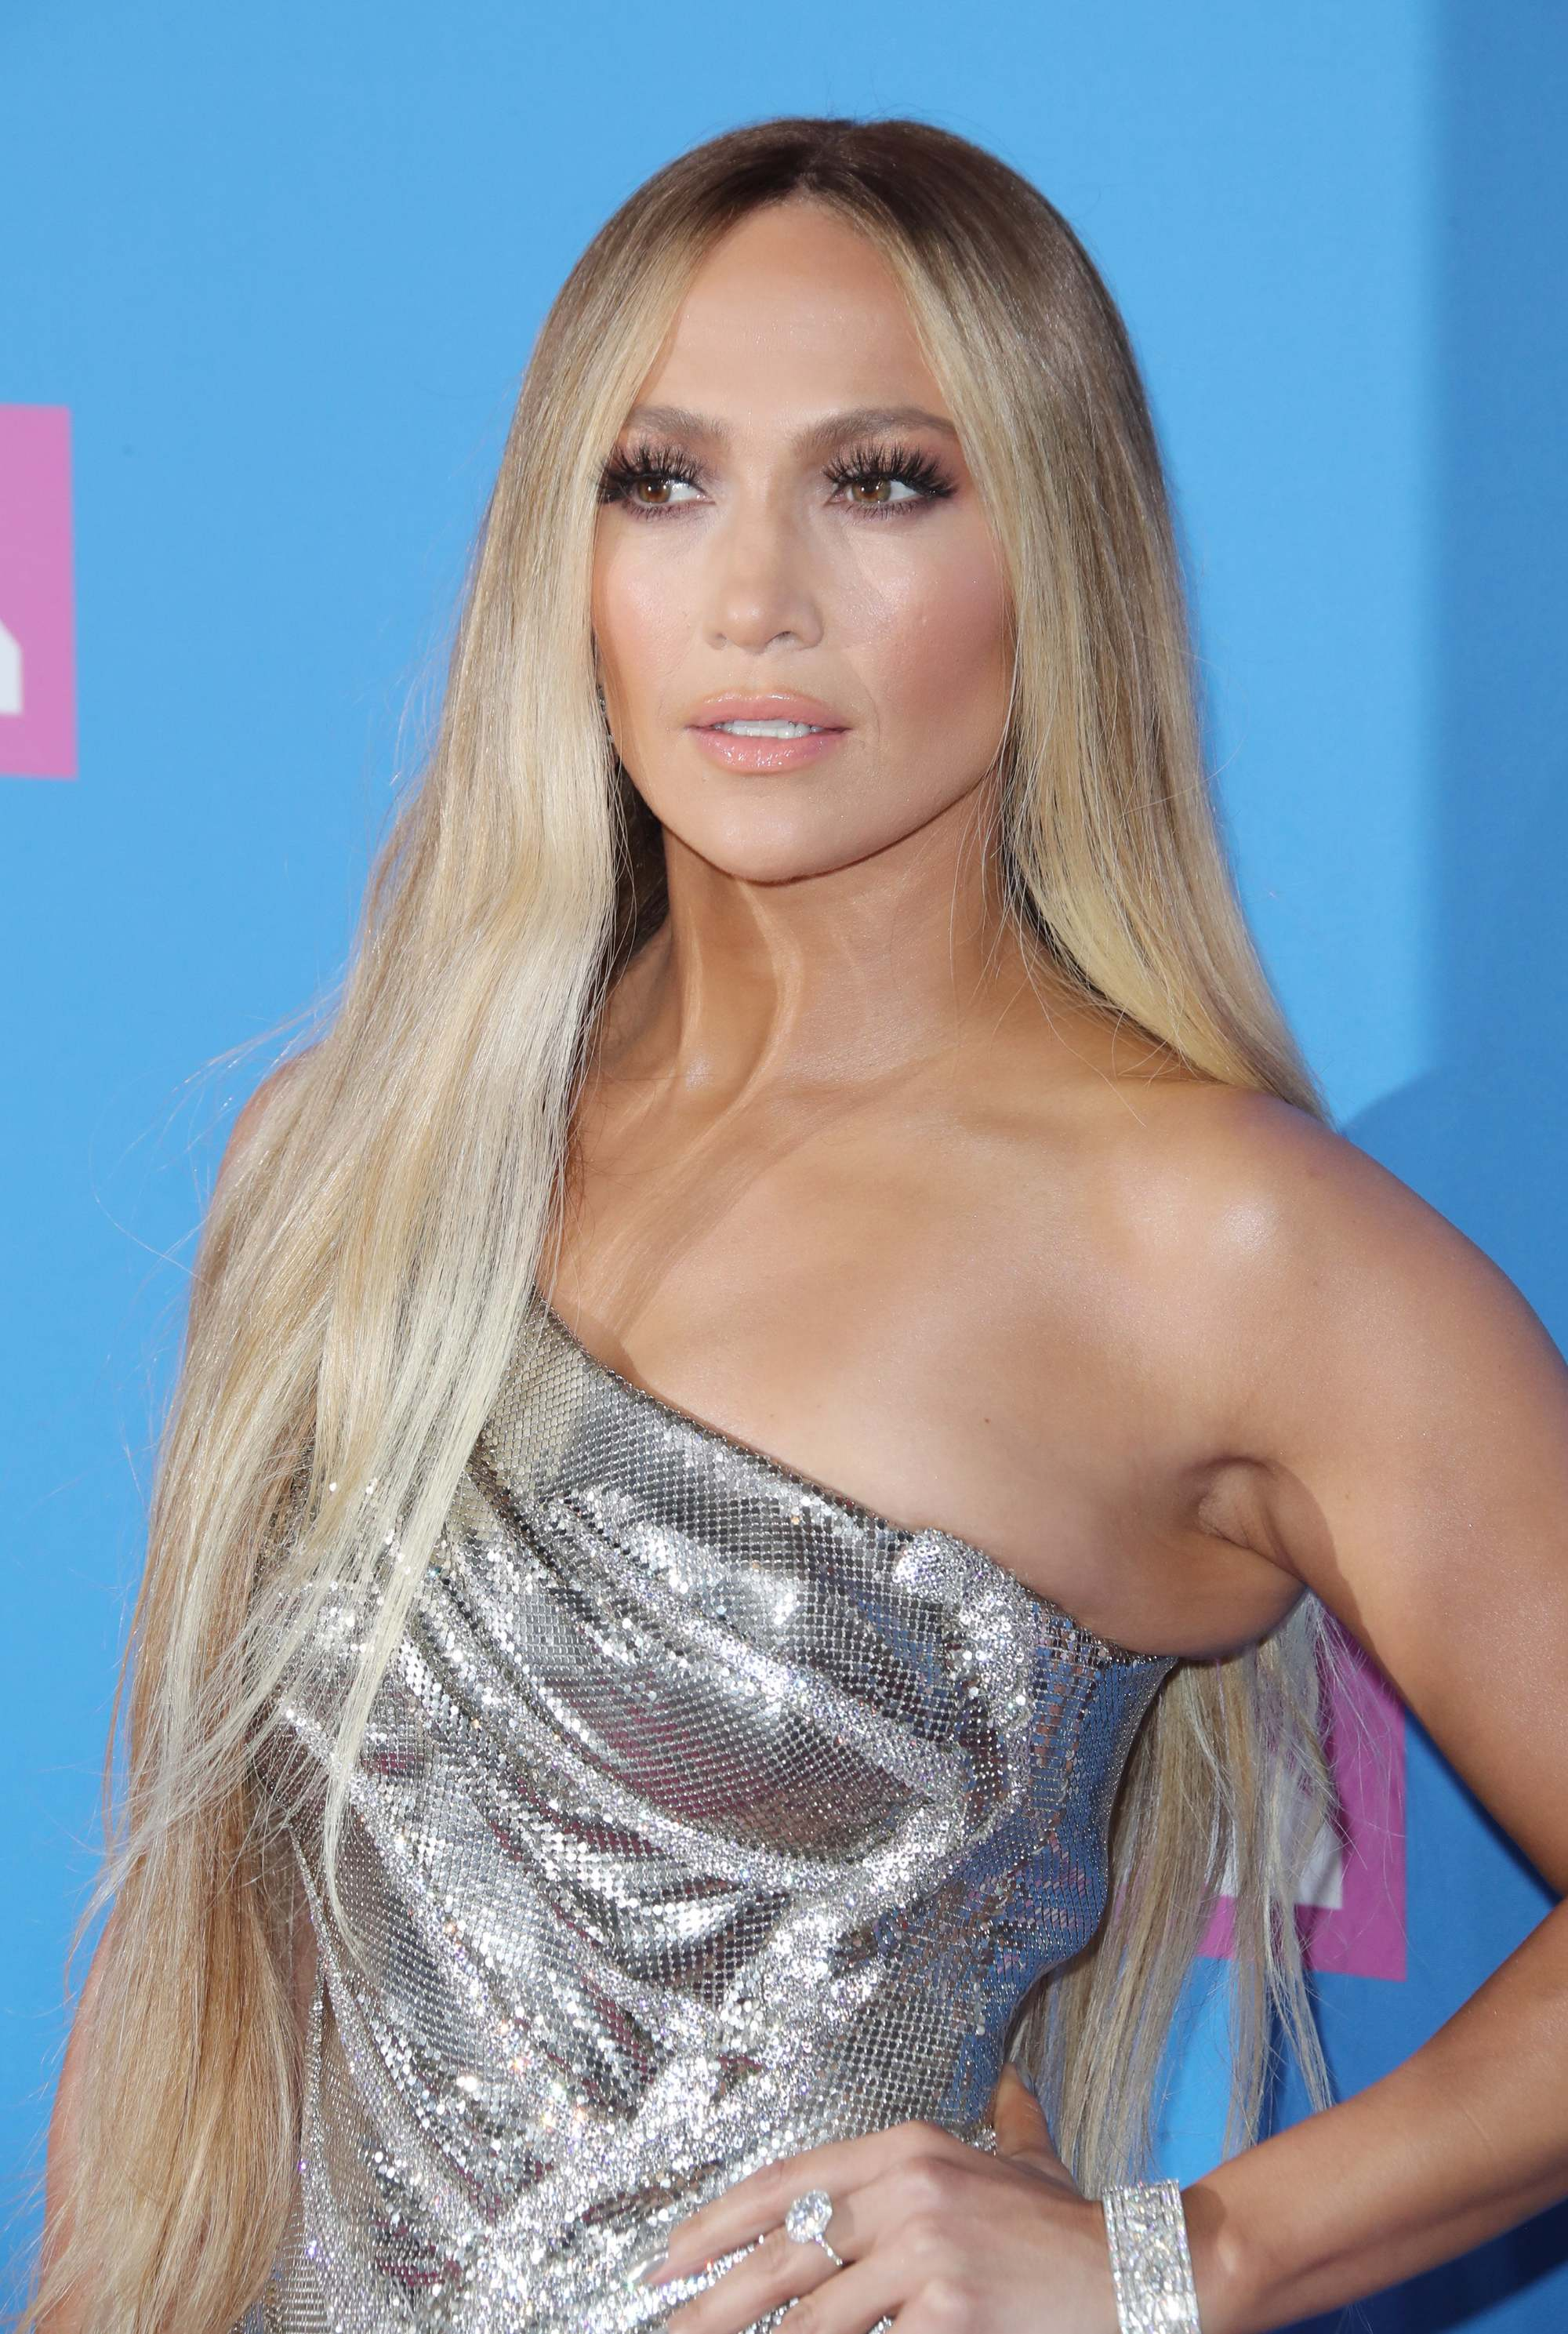 Red carpet hairstyles: Jennifer Lopez with long ash and golden blonde hair on the VMA red carpet.